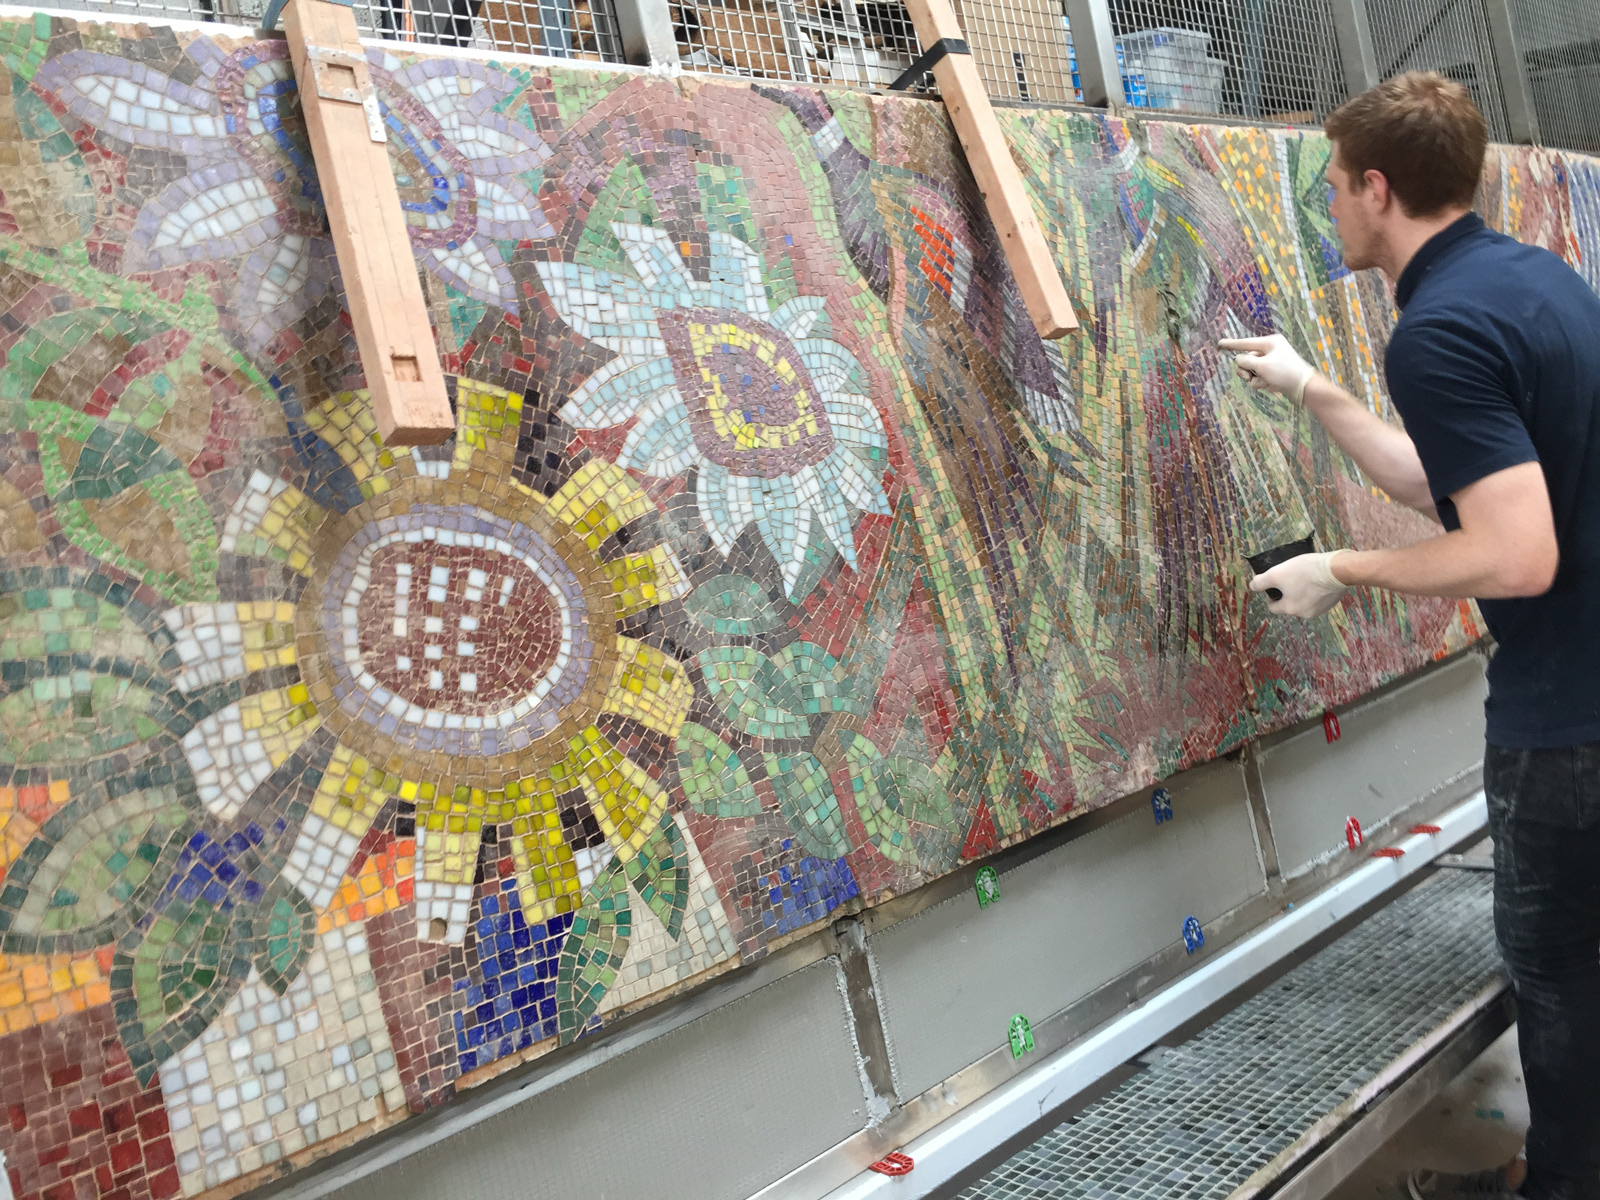 leeds-college-of-art-2015-mosaic-workshop-frame